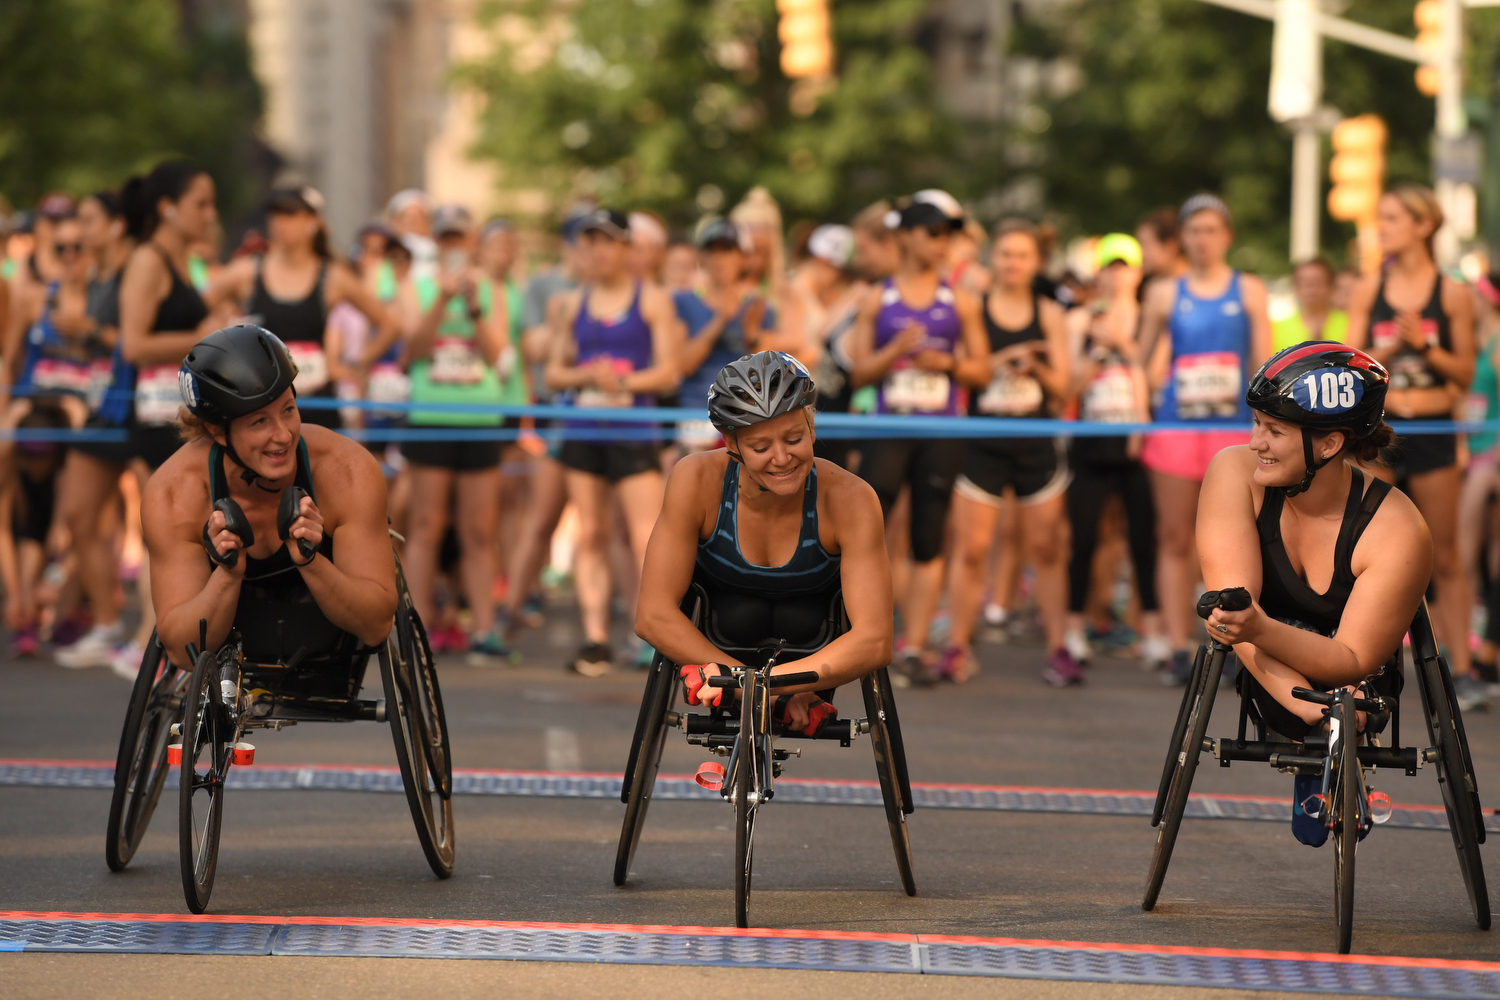 Tatyana McFadden, Susannah Scaroni, and Chelsea McClammer at the starting line of the 2018 New York Mini 10K